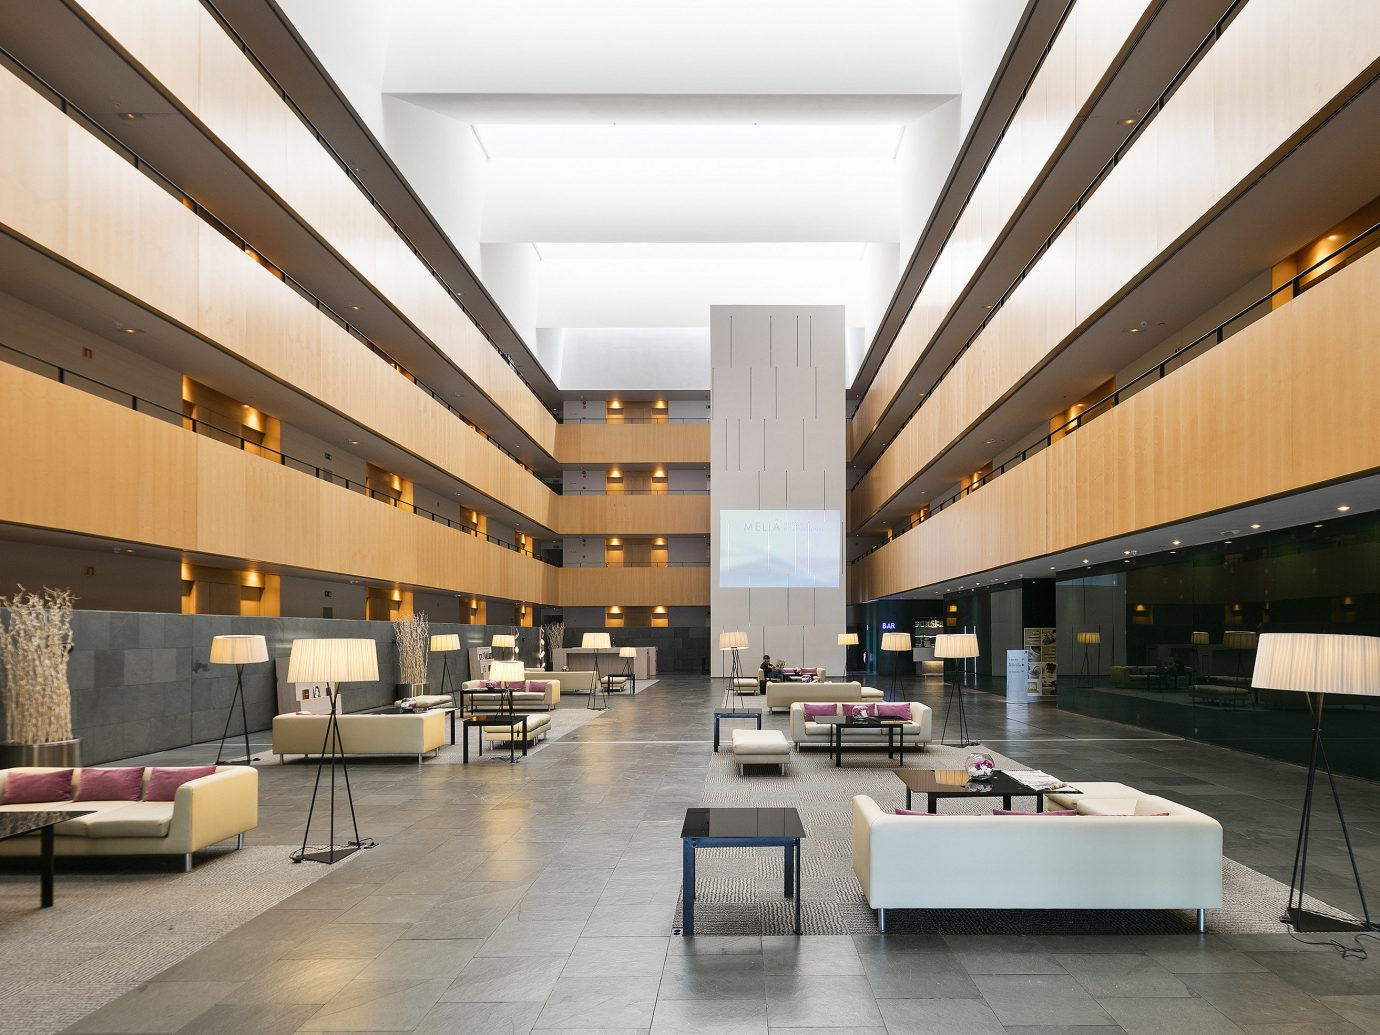 Travel Tips indoor floor Lobby Architecture ceiling headquarters interior design professional Design daylighting convention center plaza shopping mall real estate